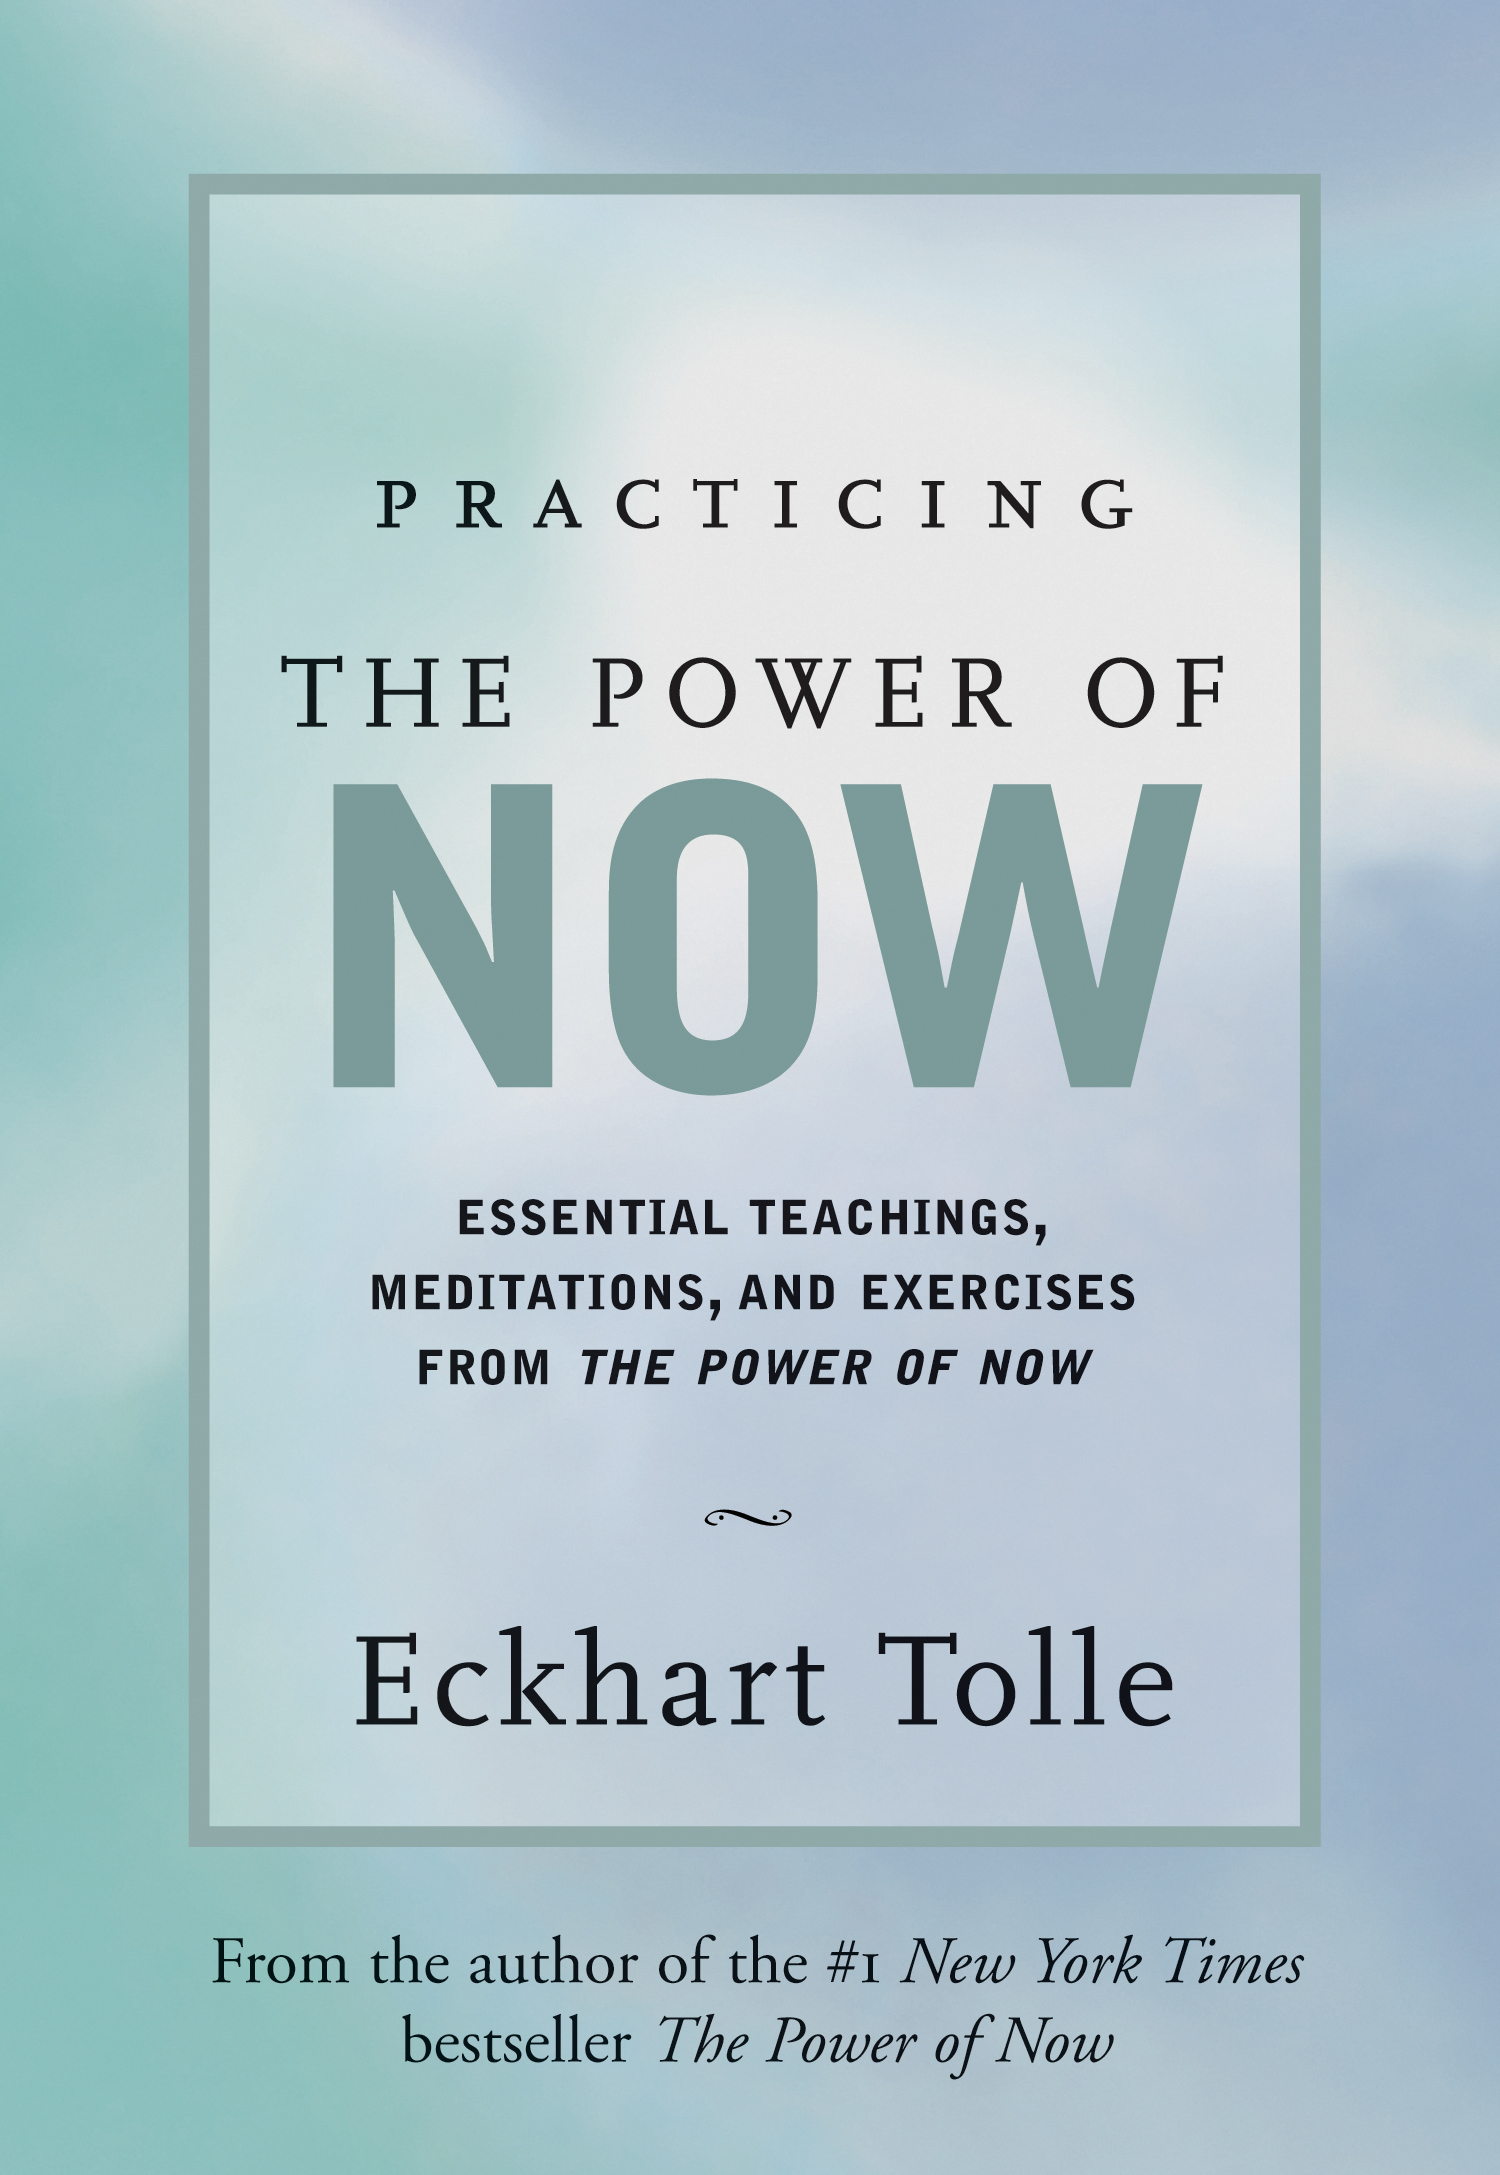 Practicing the Power of Now Essential Teachings, Meditations, and Exercises from the Power of Now